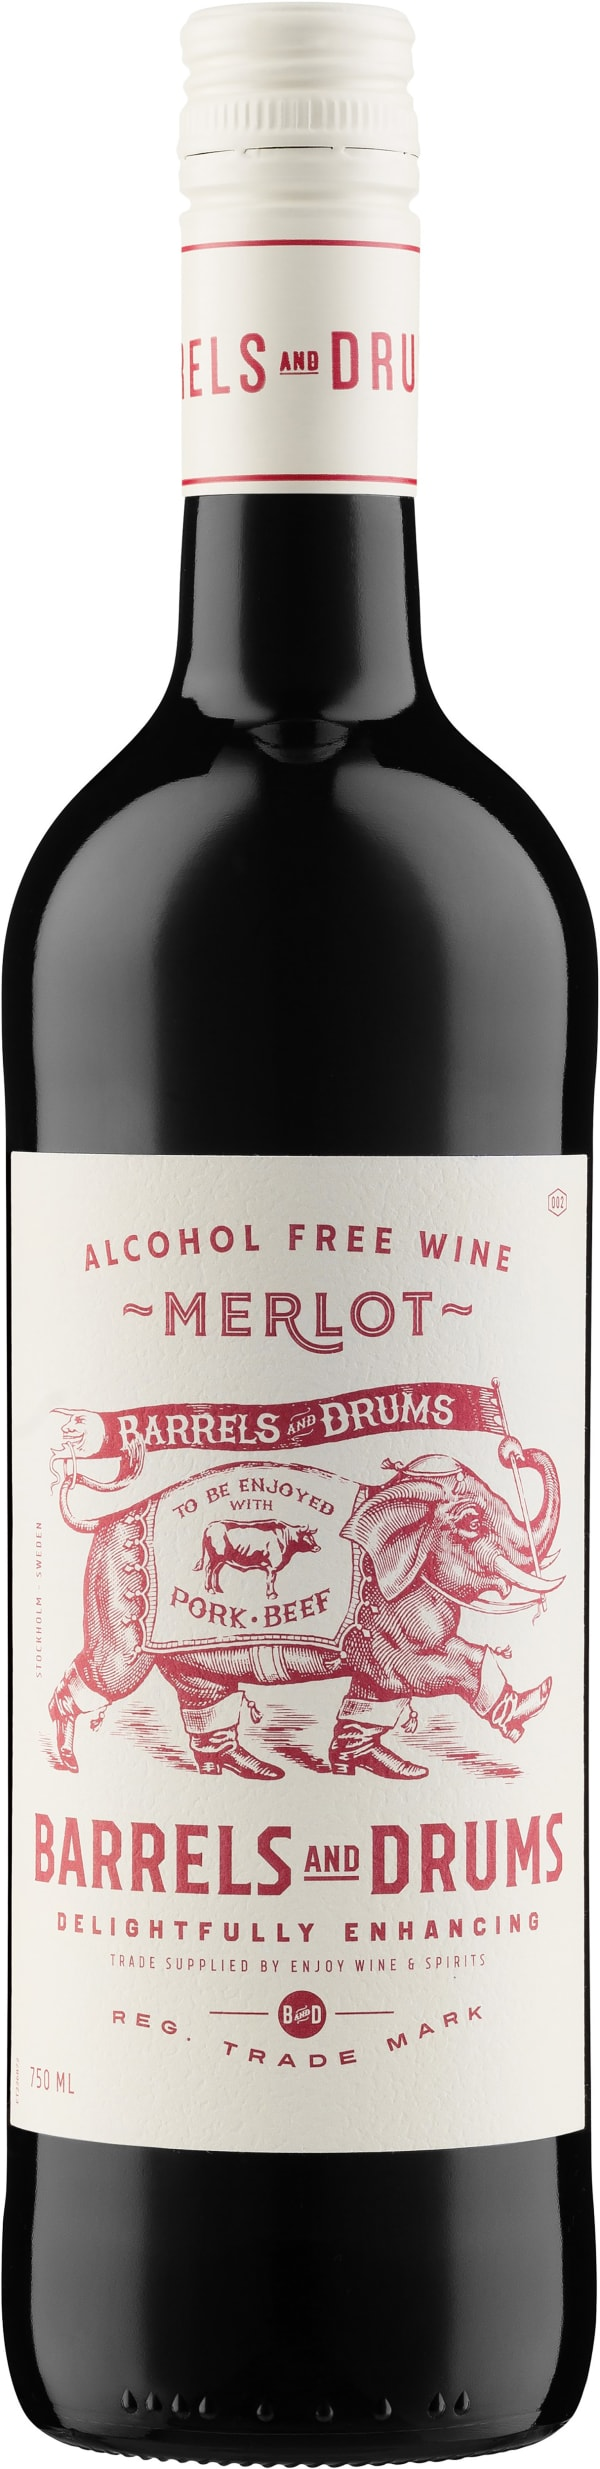 Barrels and Drums Merlot Alcohol Free